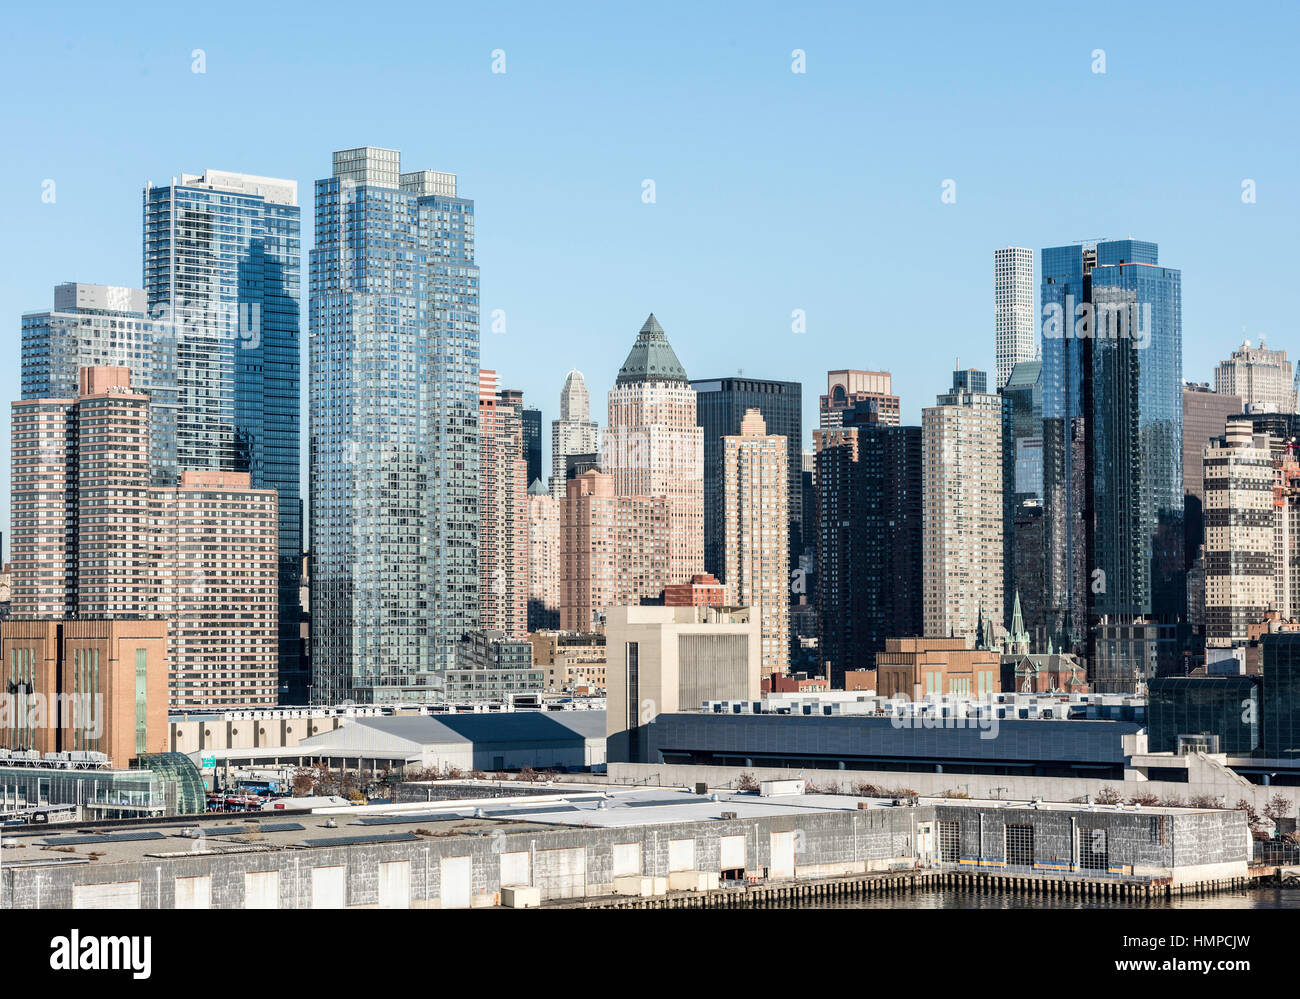 View of New York City Buildings from the harbor of the Hudson River. With high skyscrapers over looking the harbor. Stock Photo